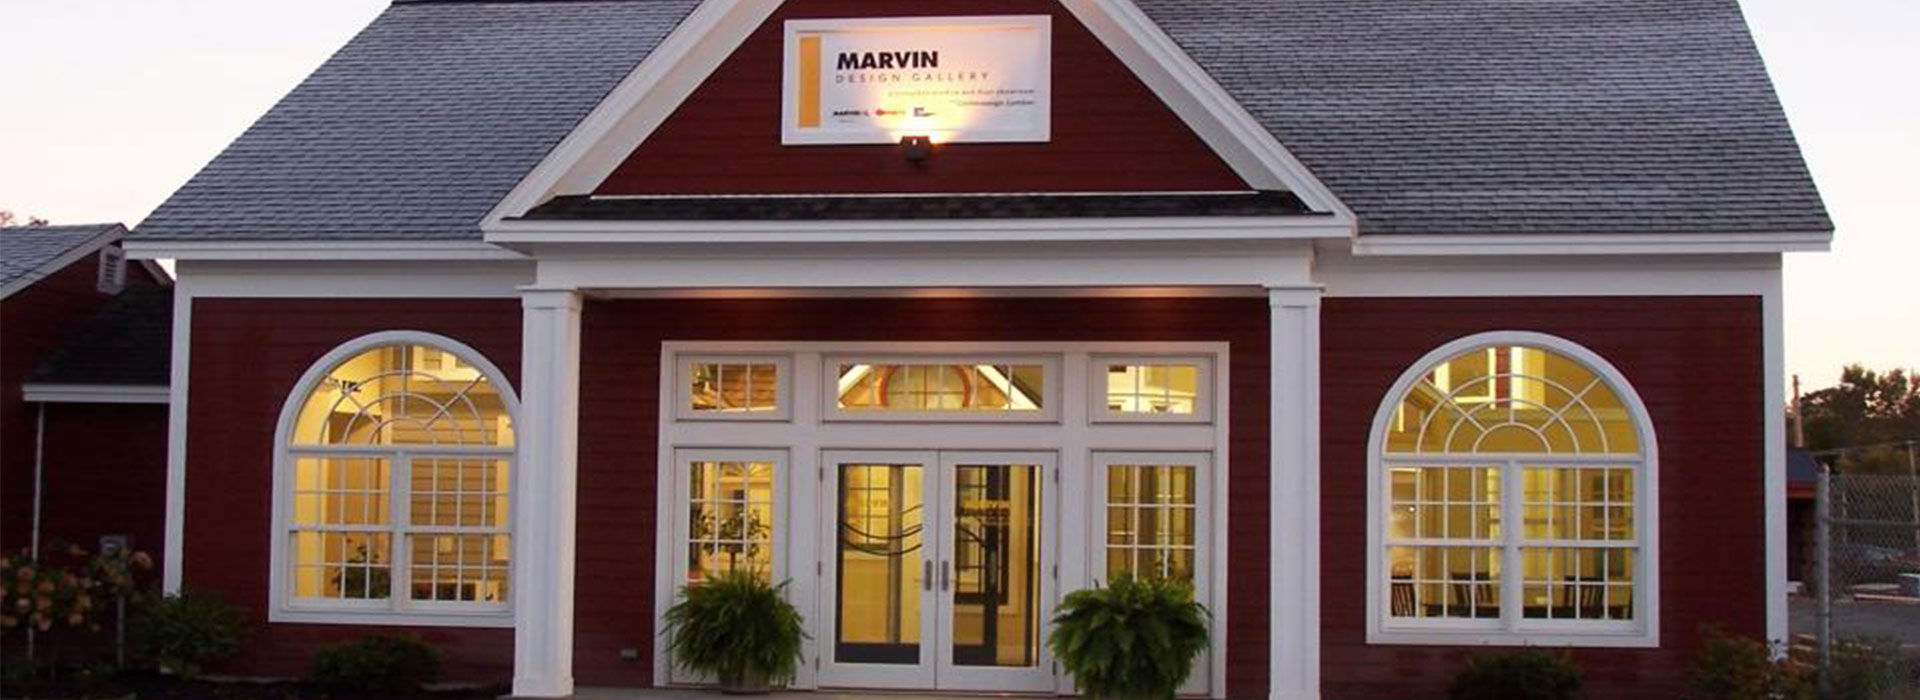 Marvin Design Gallery Header